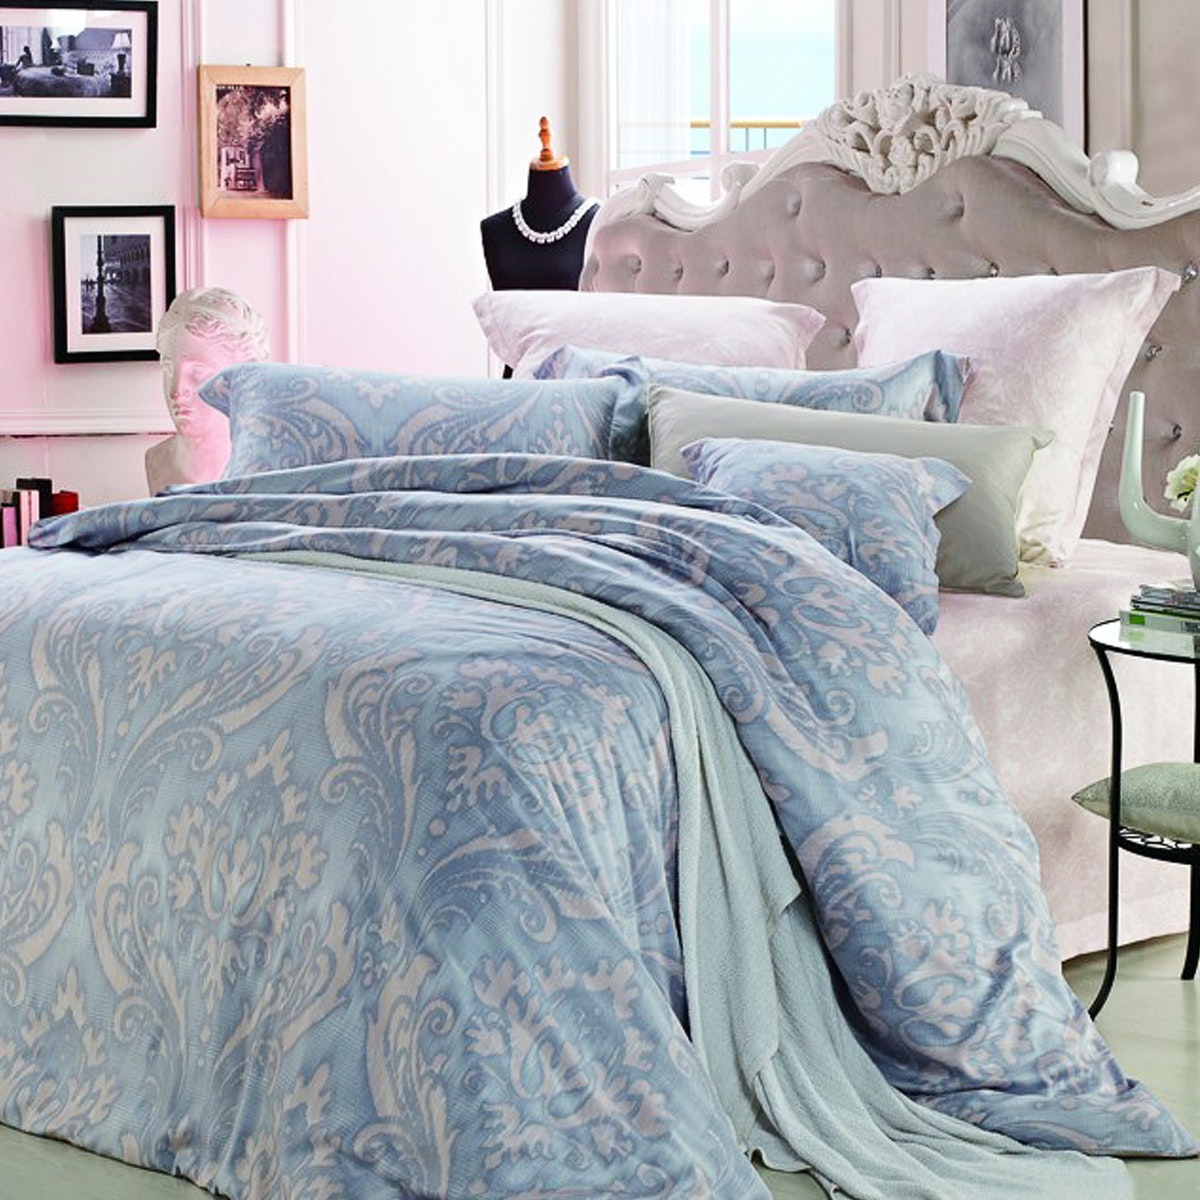 Palmerhaus Set Bedcover Verve Blue Bedding Set 180x200x40cm